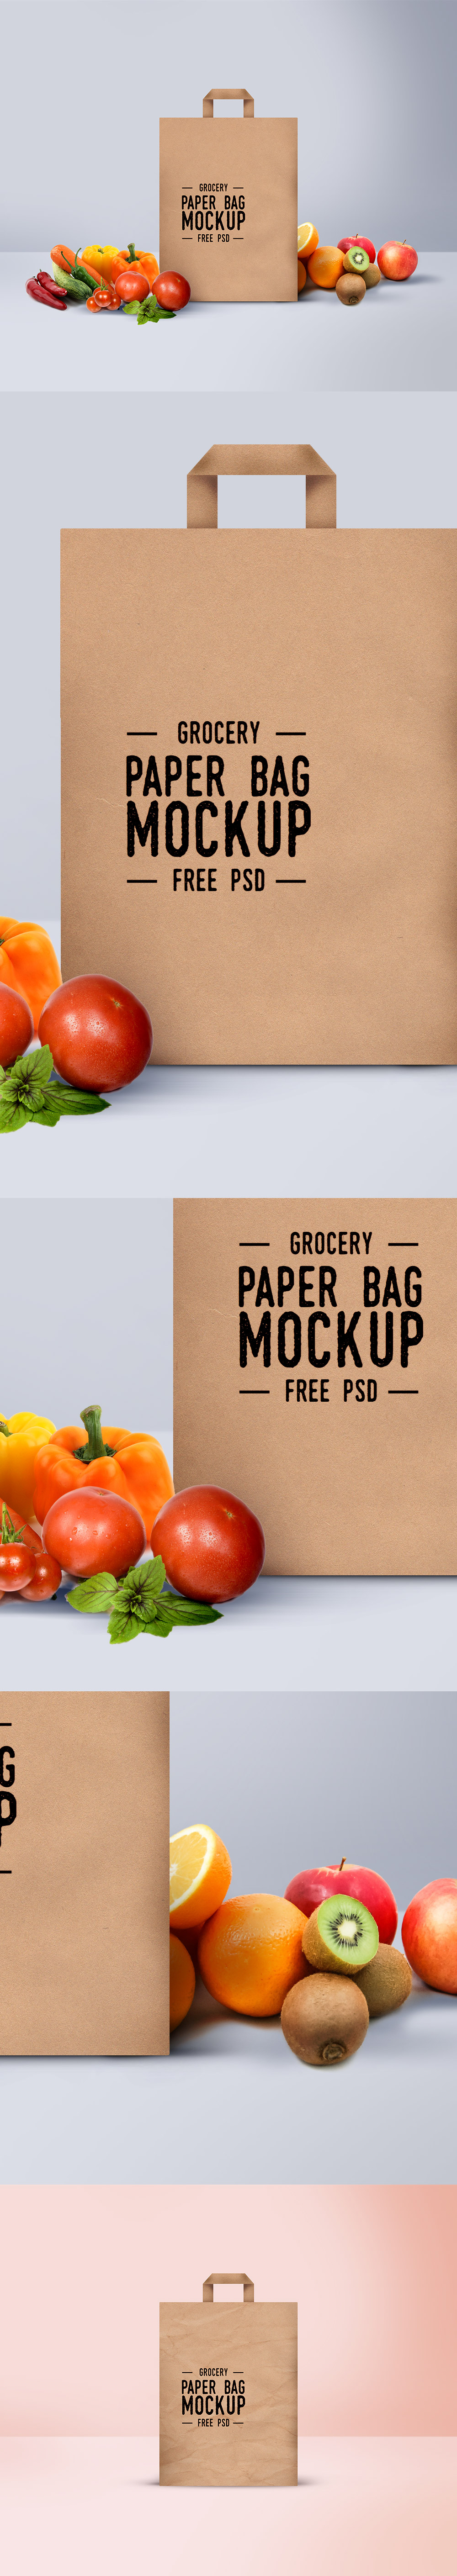 Shopping Paper Bag Mockup